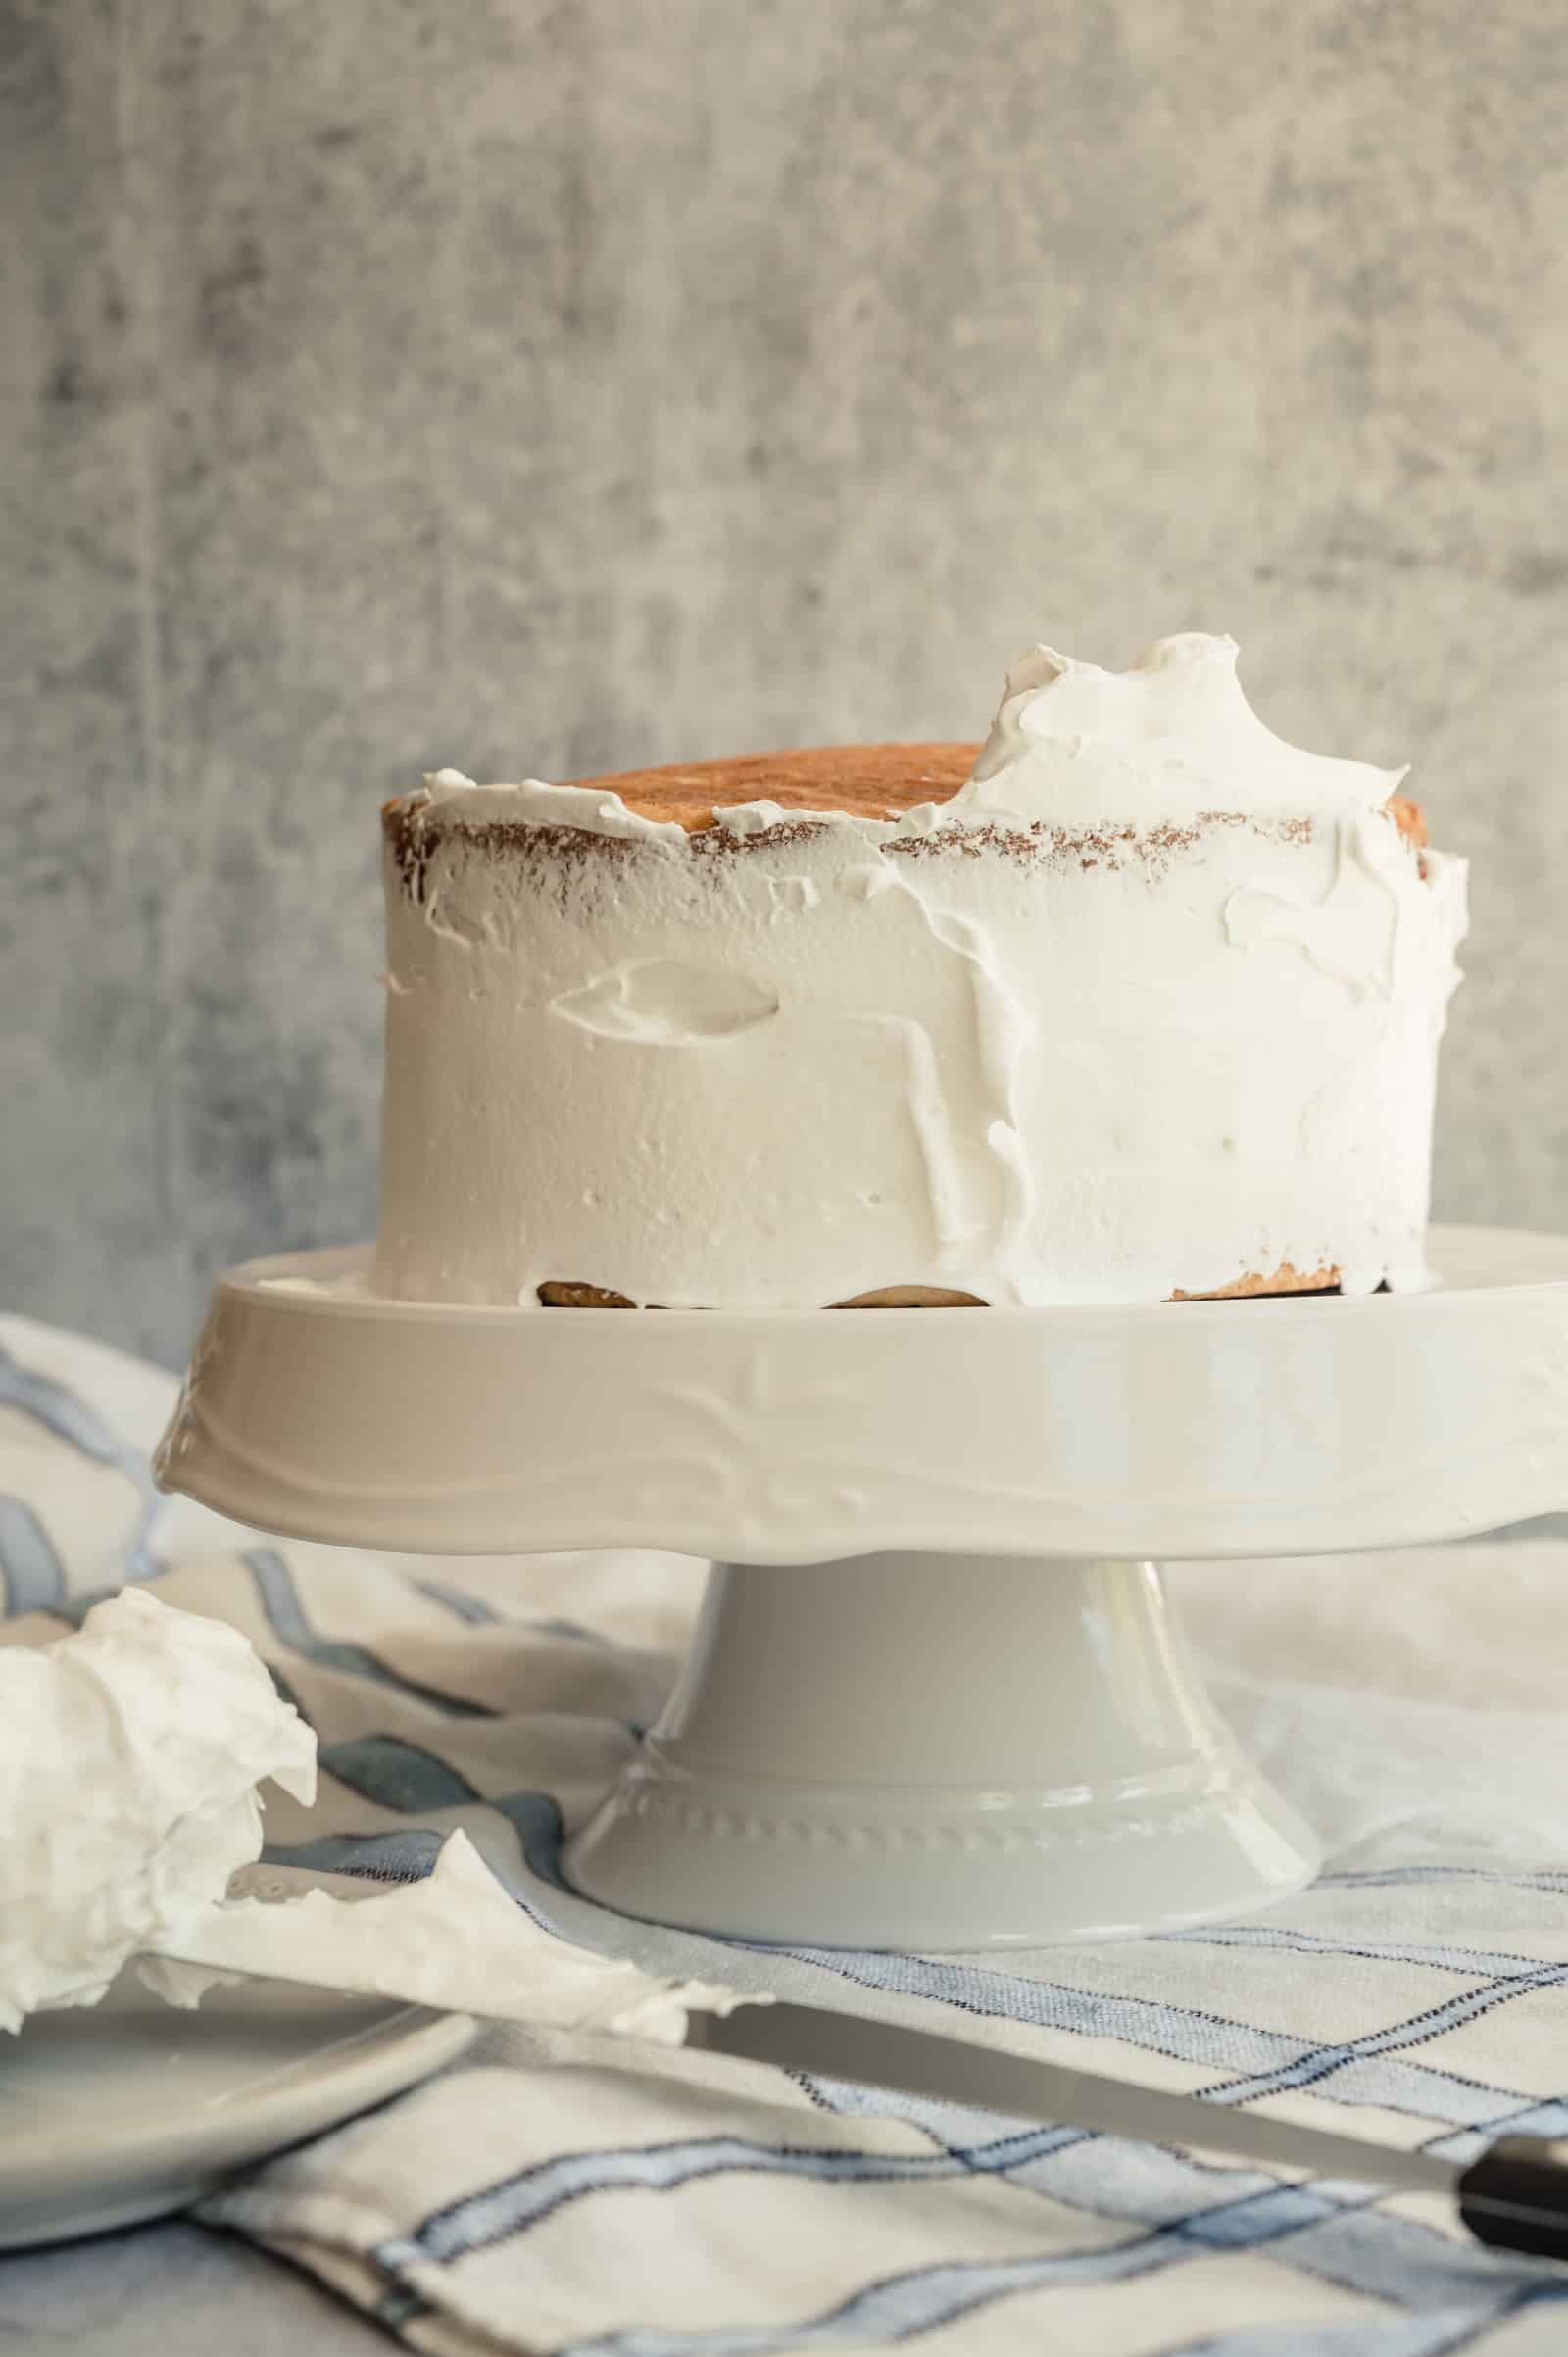 coconut cake frosted with crumb coat on a white platter